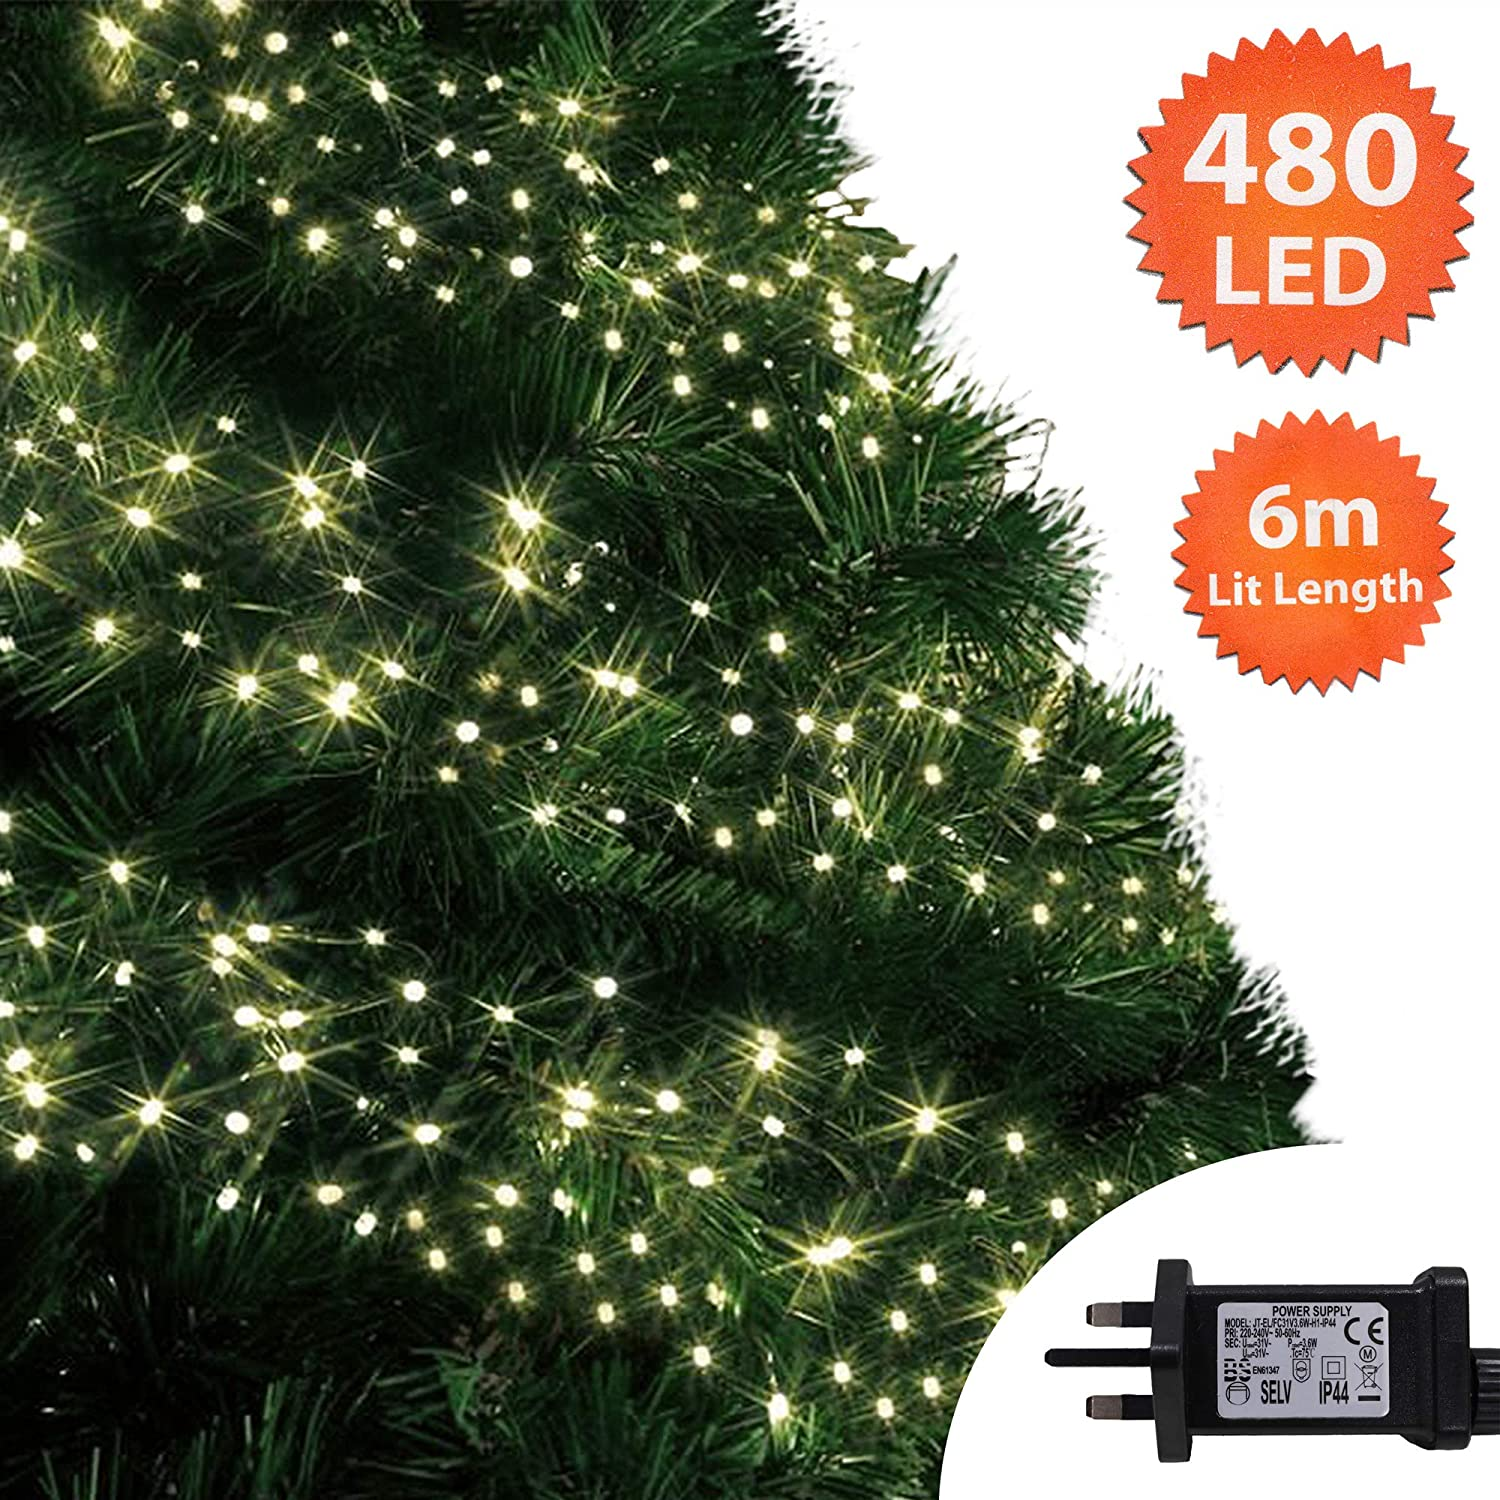 Christmas Tree Lights.Christmas Lights 480 Led 6m Warm White Outdoor Cluster Tree Lights String Indoor Fairy Lights Memory Timer Mains Powered 19ft Lit Length10m 32ft